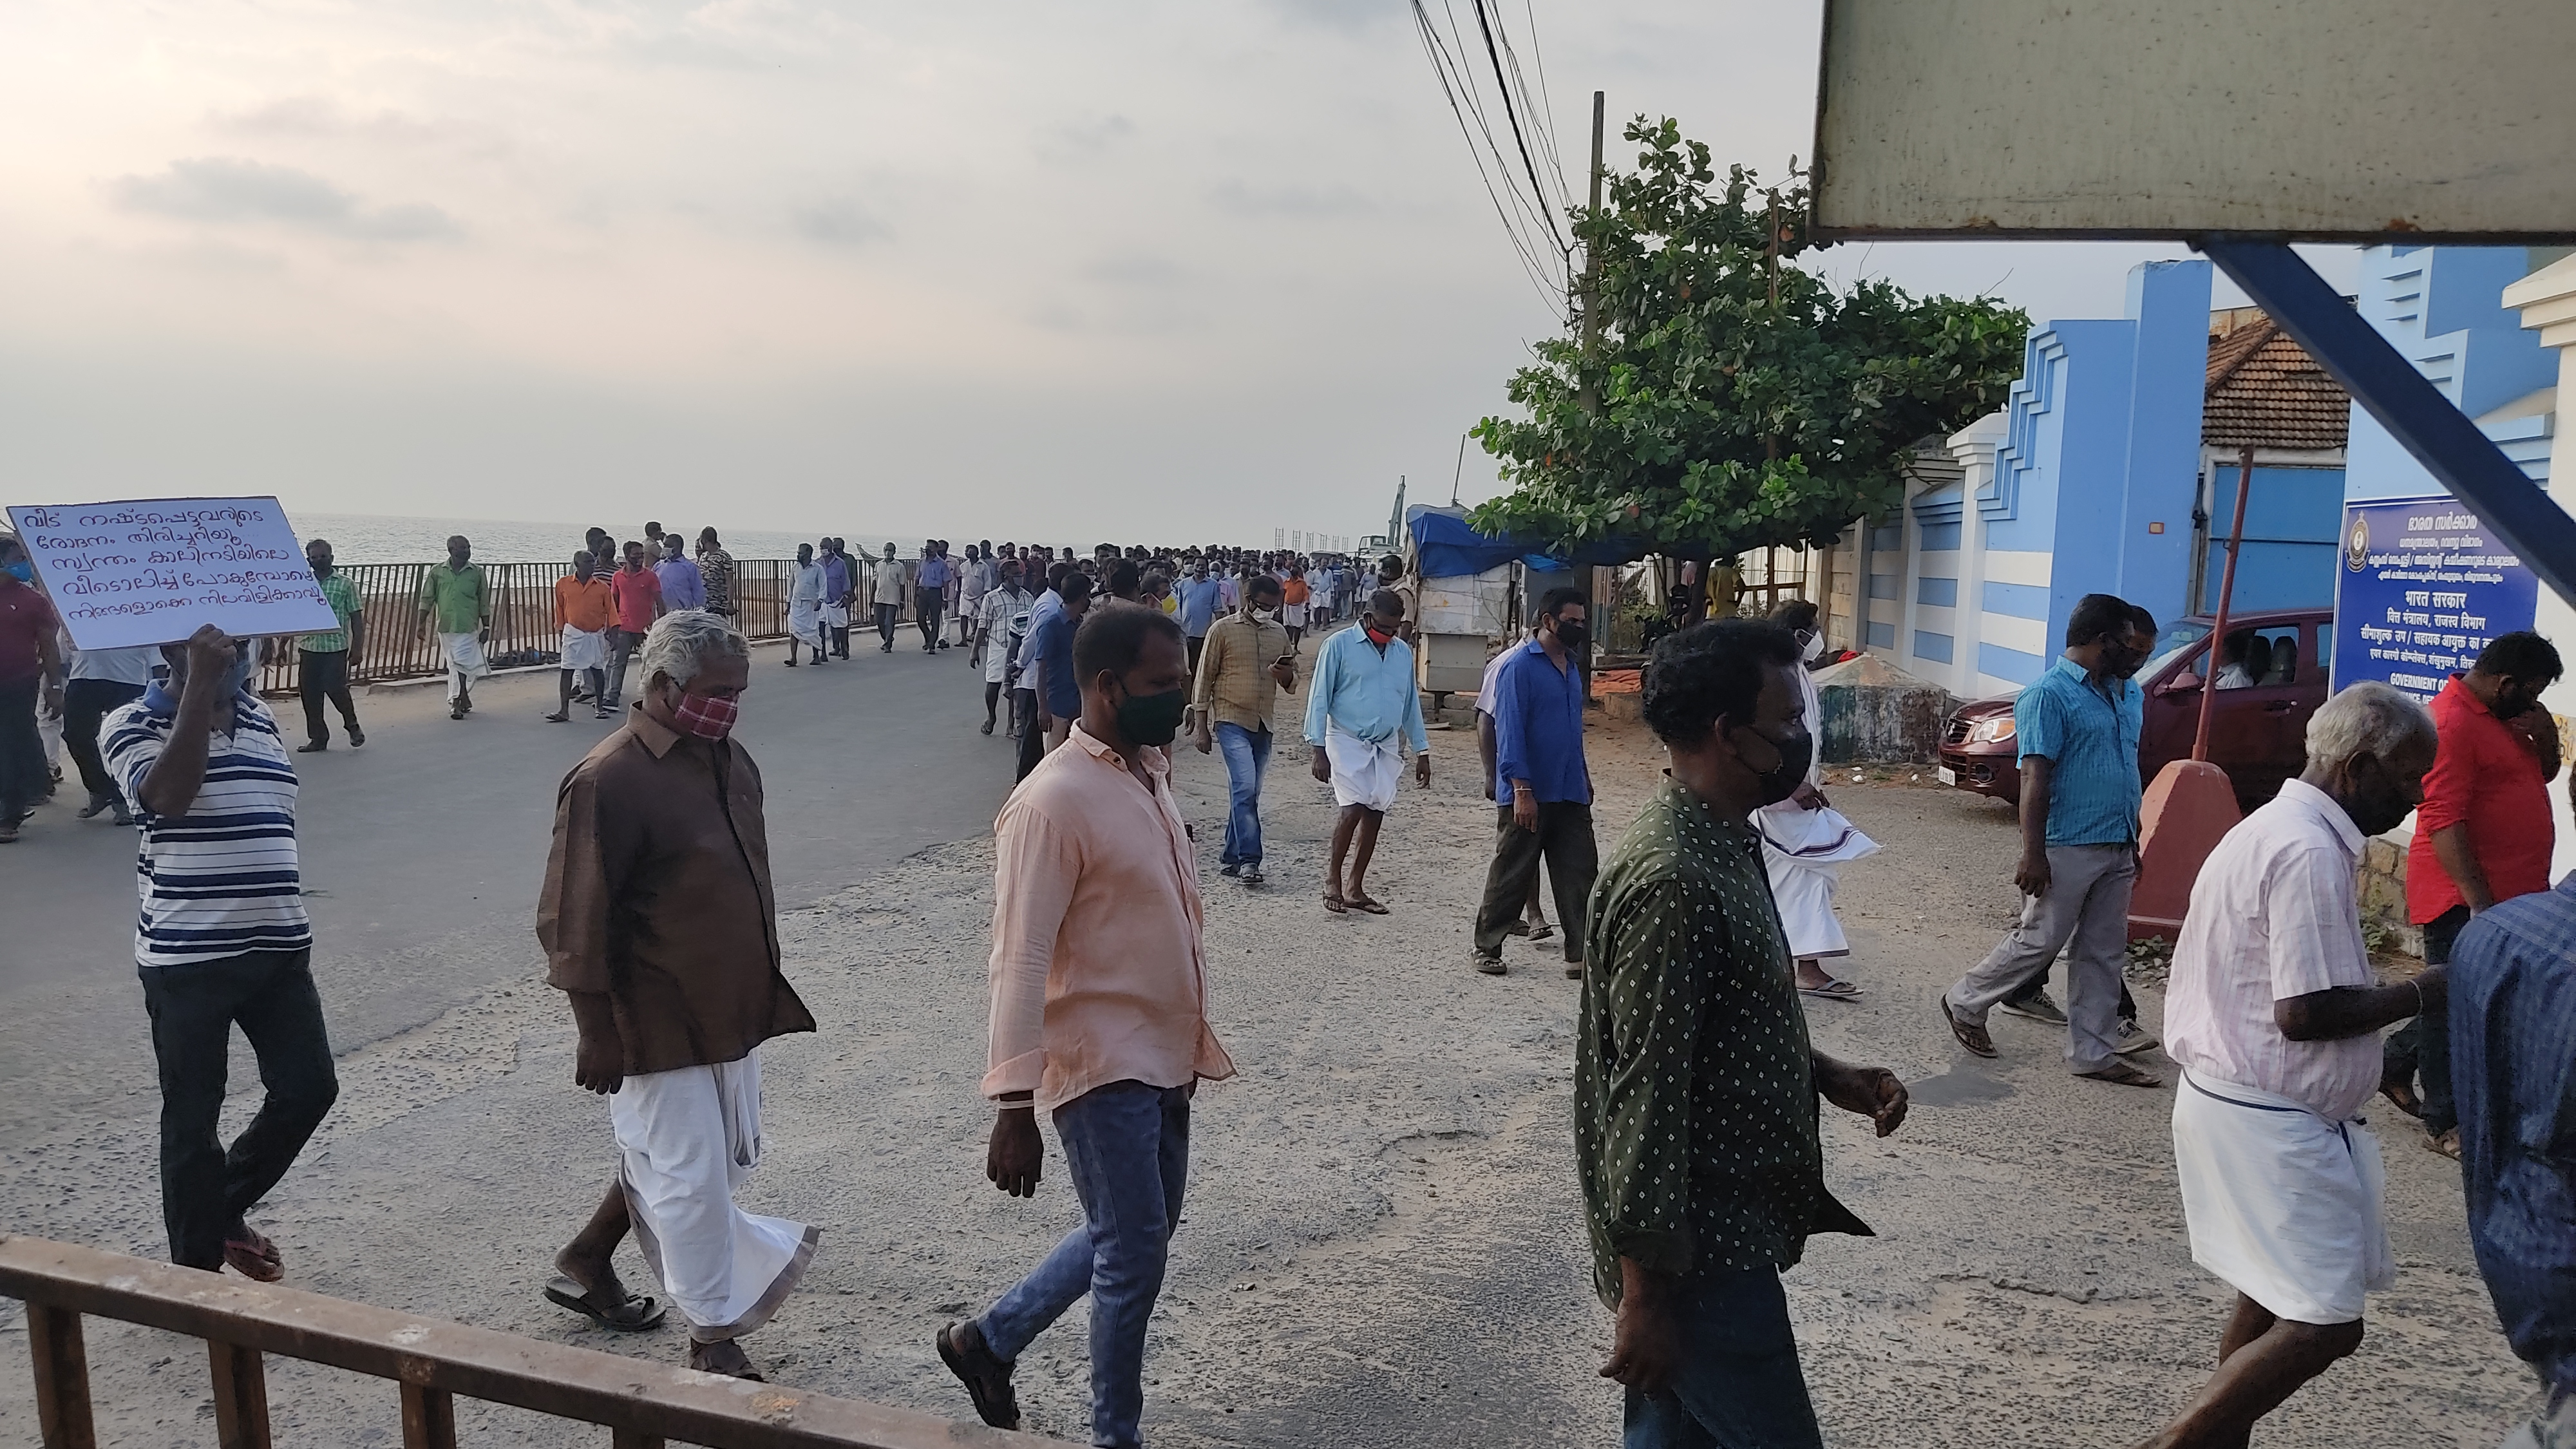 People protest at destruction of coastline, dwellings near Adani's Vizhinjam port redevelopment